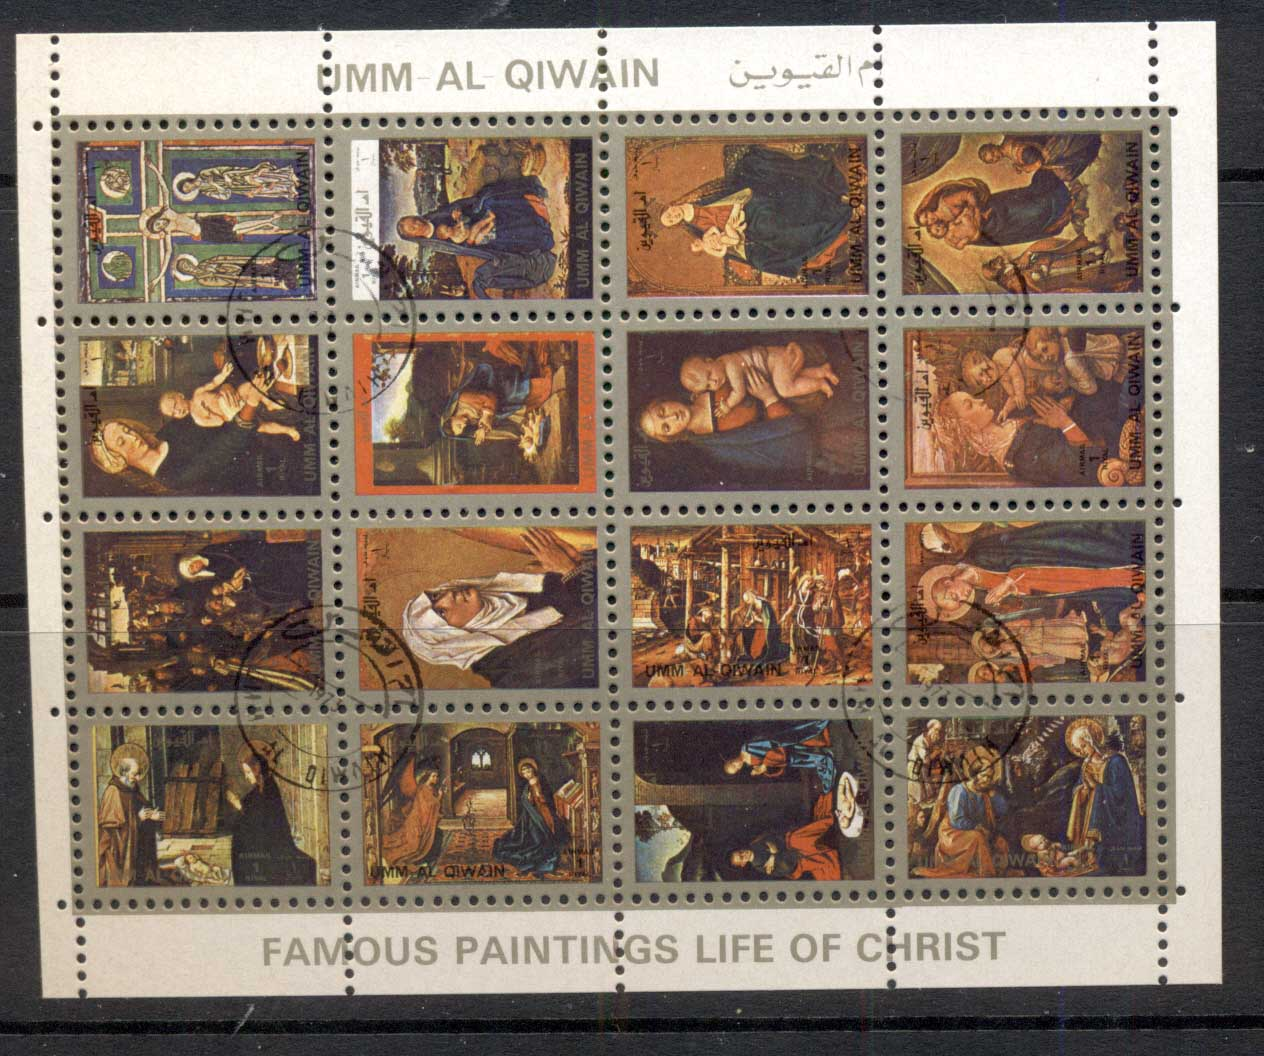 Umm Al Qiwain 1972 Mi#1178-1193 Life of Christ Paintings (II) small size CTO